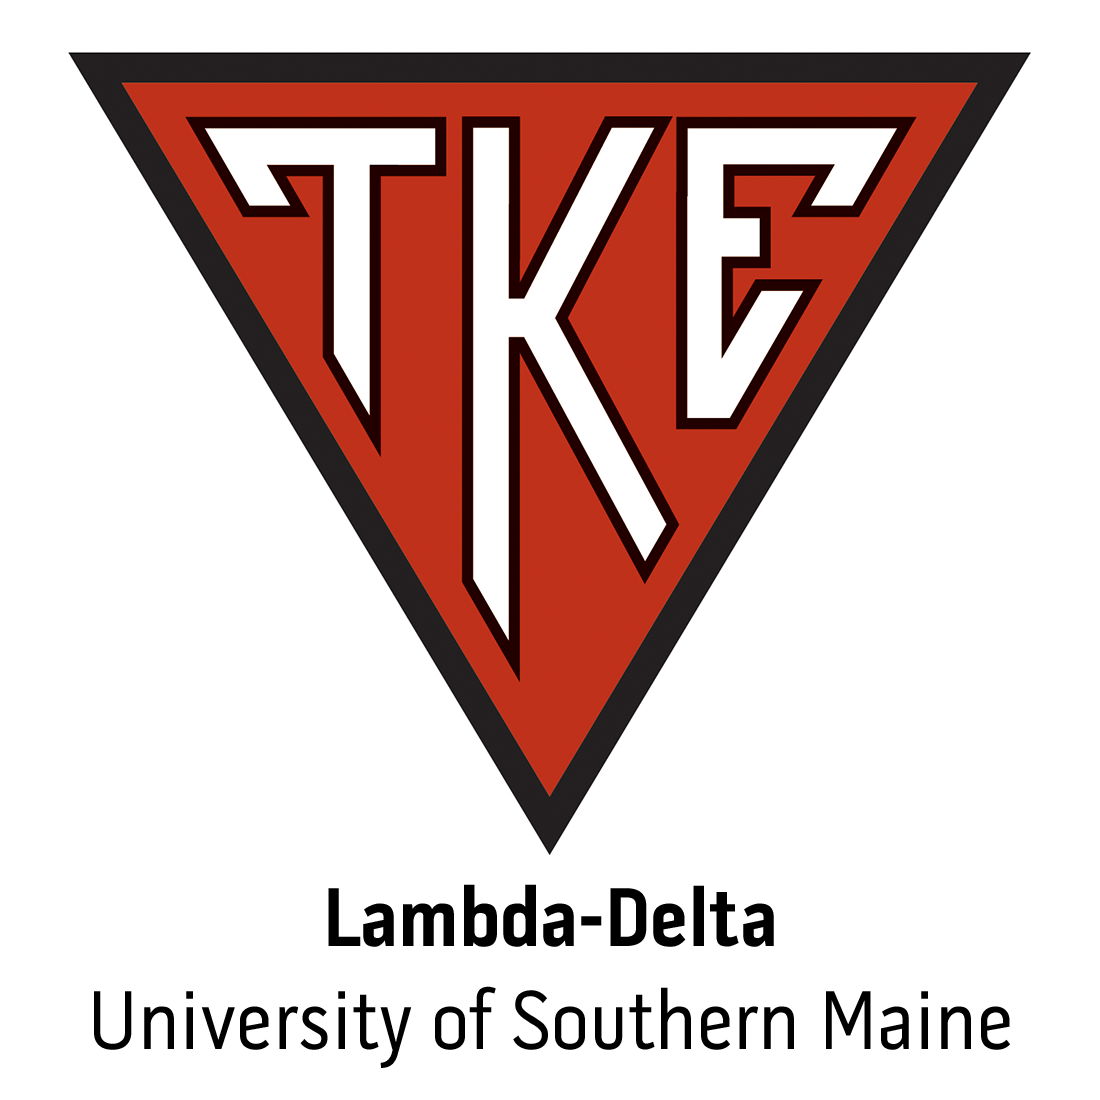 Lambda-Delta Chapter at University of Southern Maine